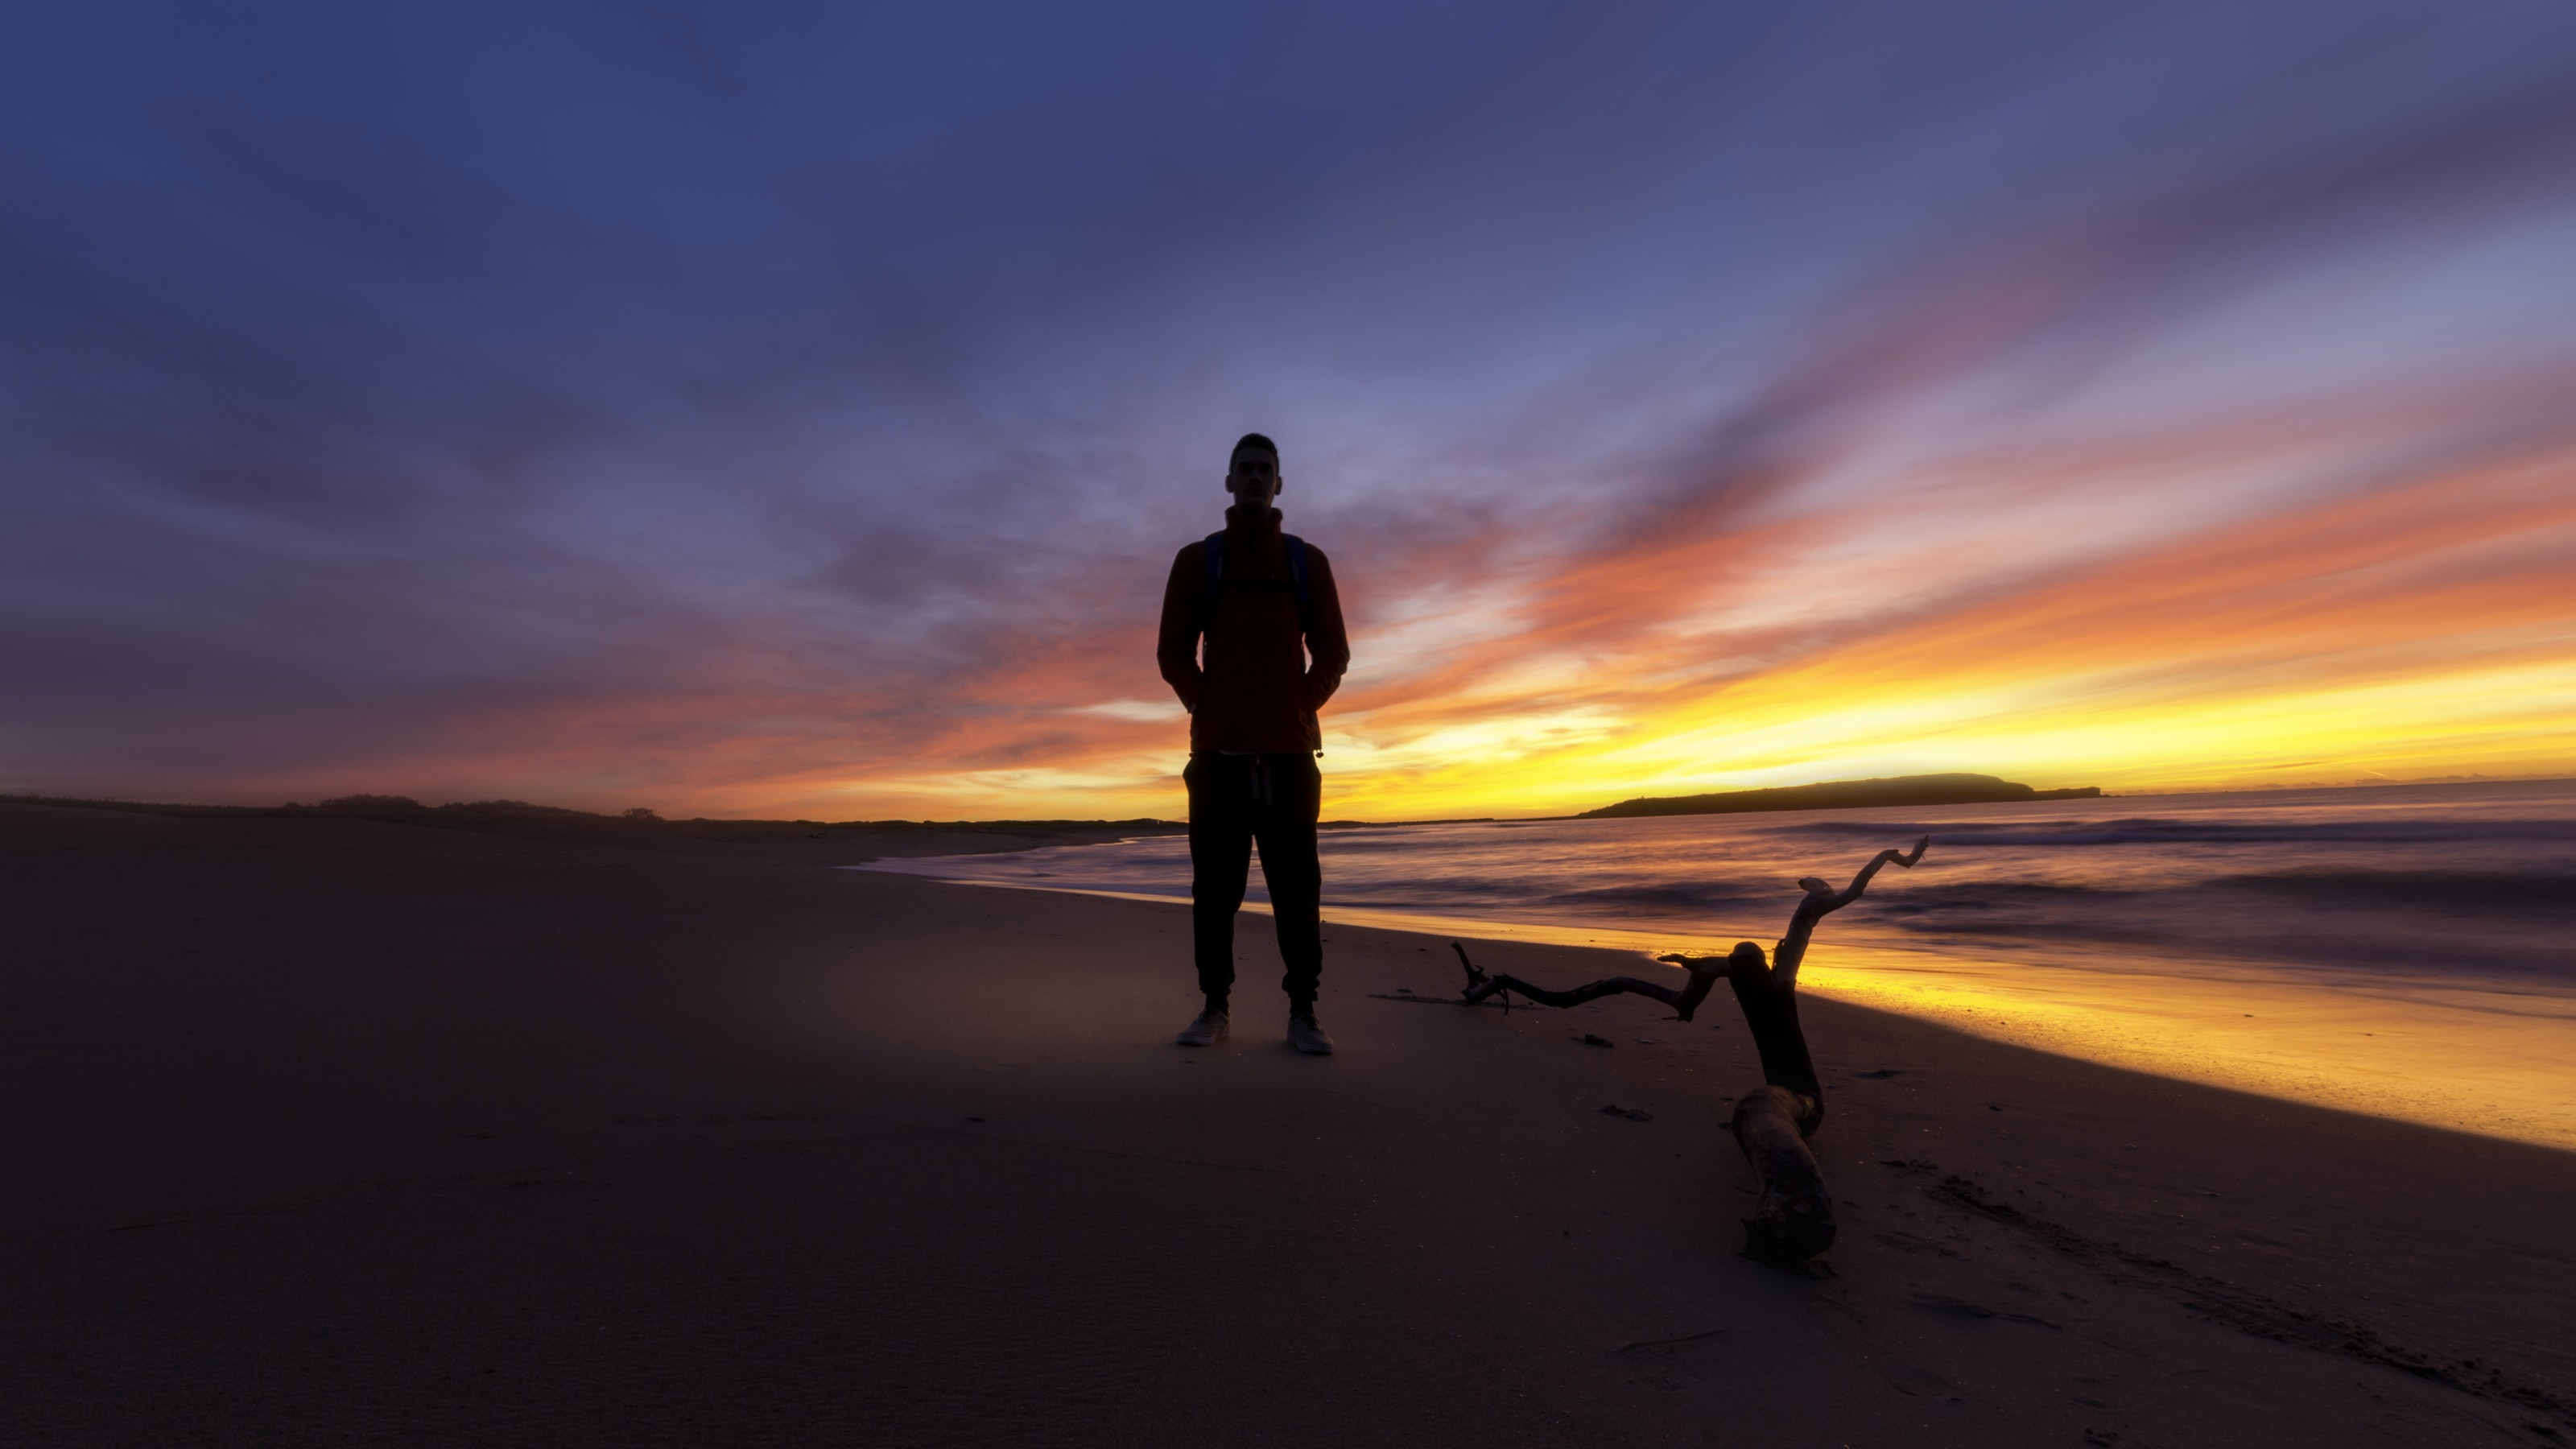 man standing on a beach during sunset